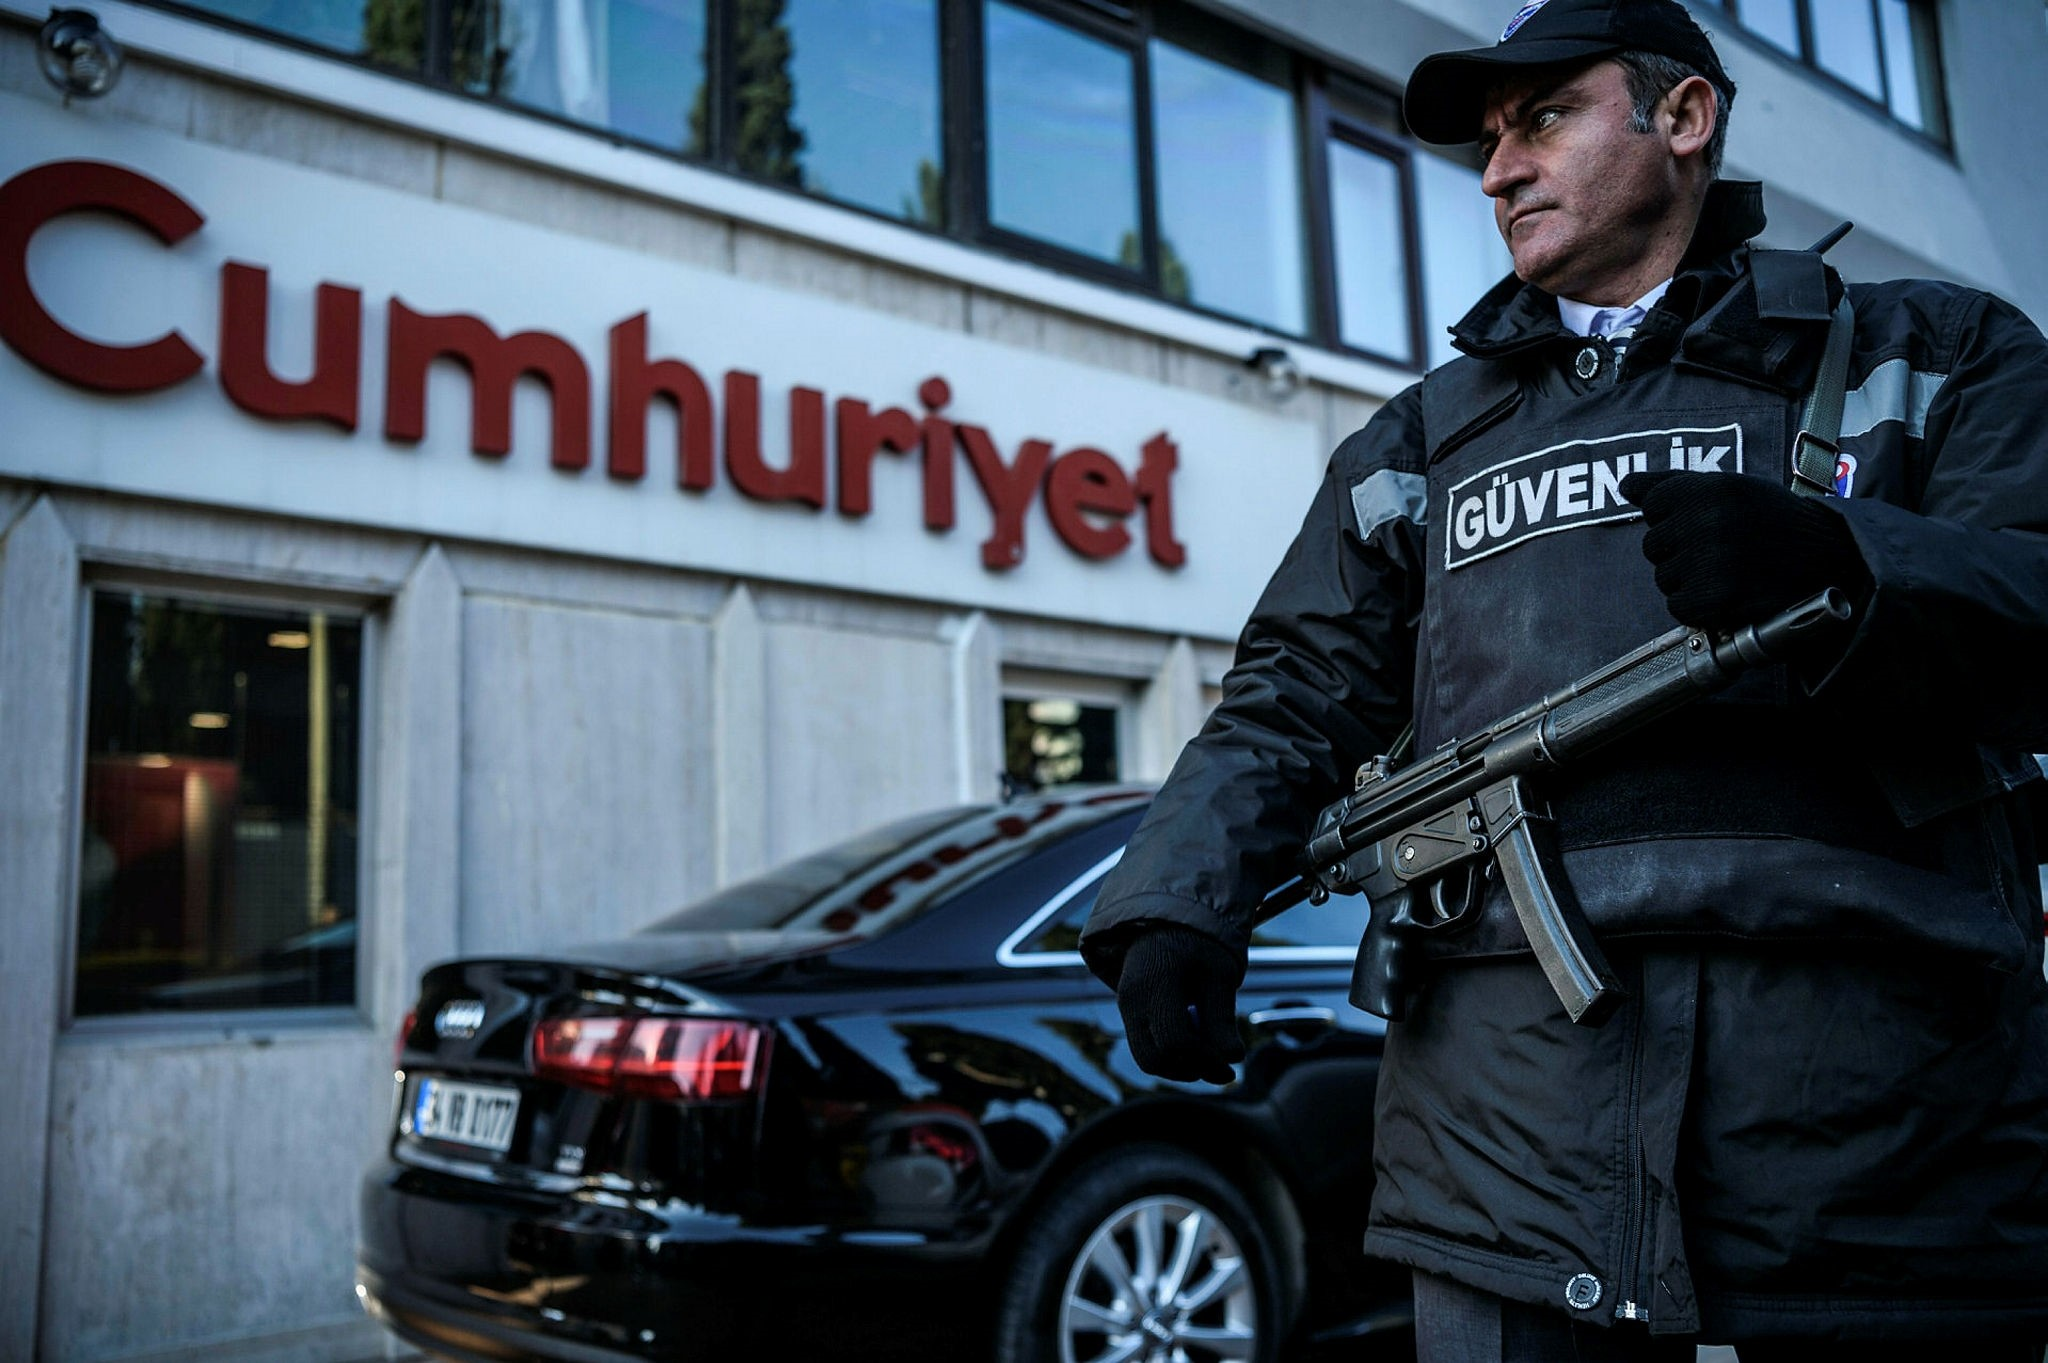 A security agent stands guard in front of the Cumhuriyet newspaper's headquarters on October 31, 2016 in Istanbul. (AFP Photo)